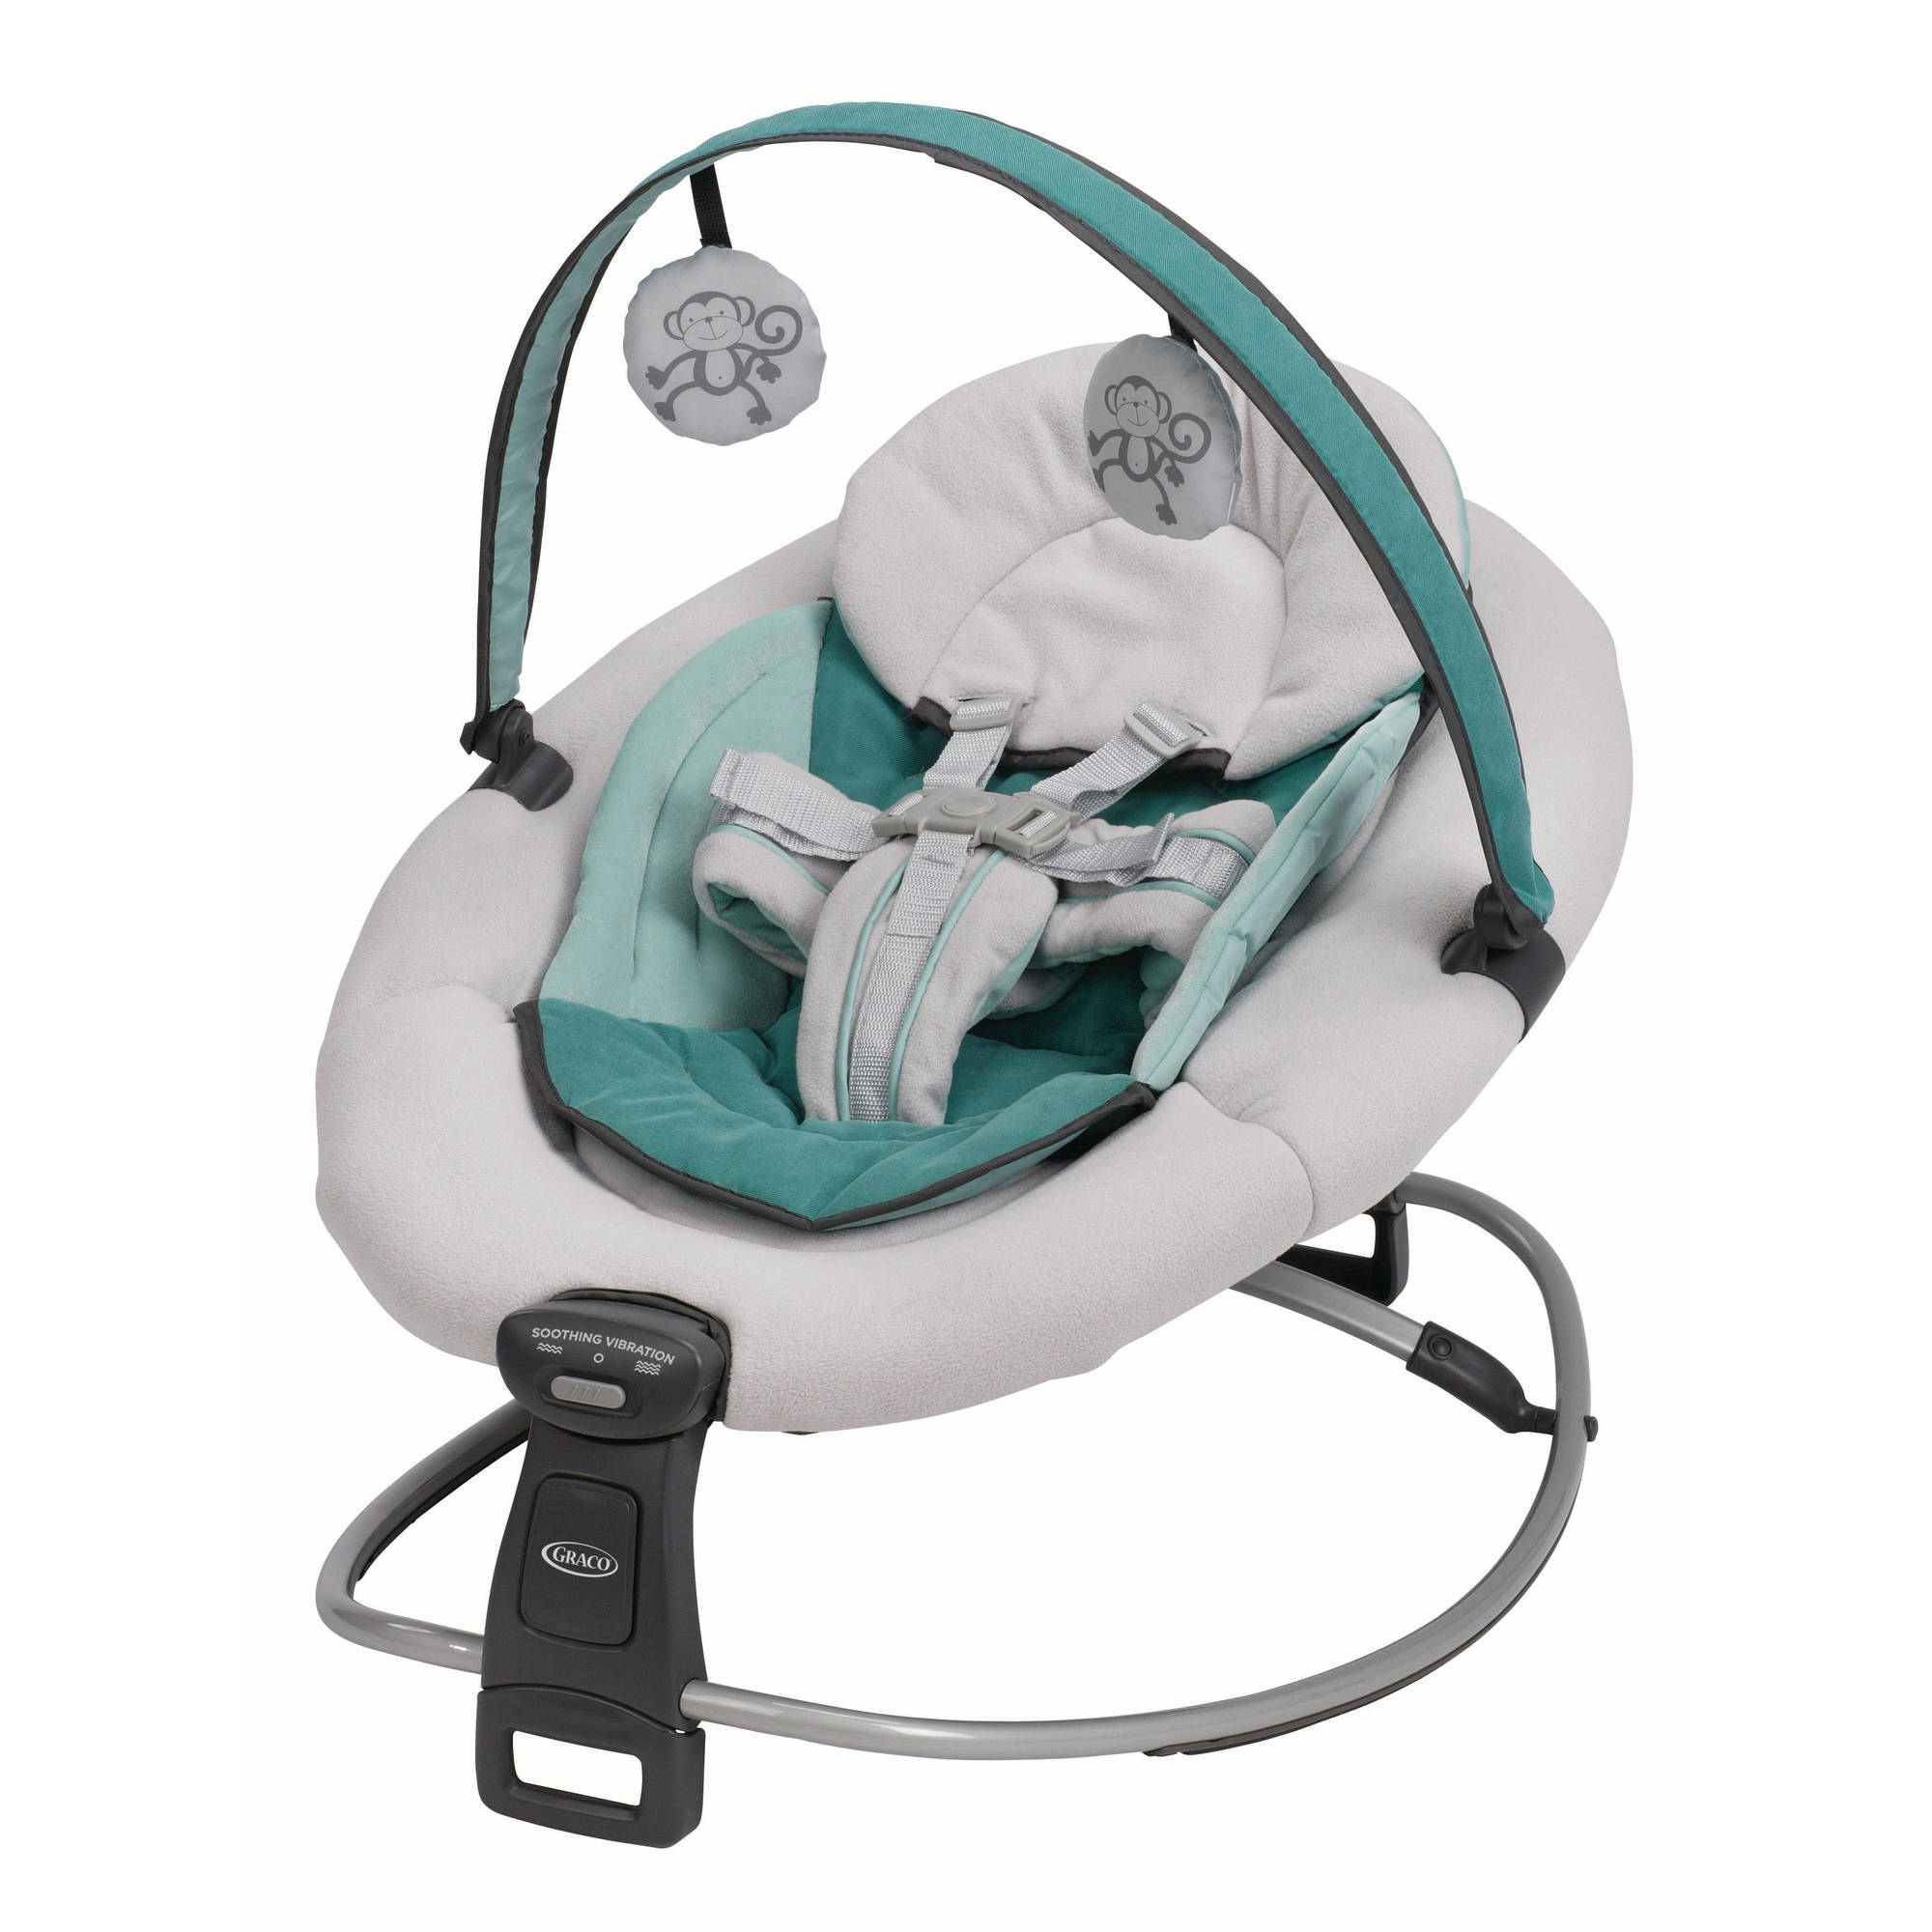 Graco Duet Rocker and Baby Seat, Sapphire